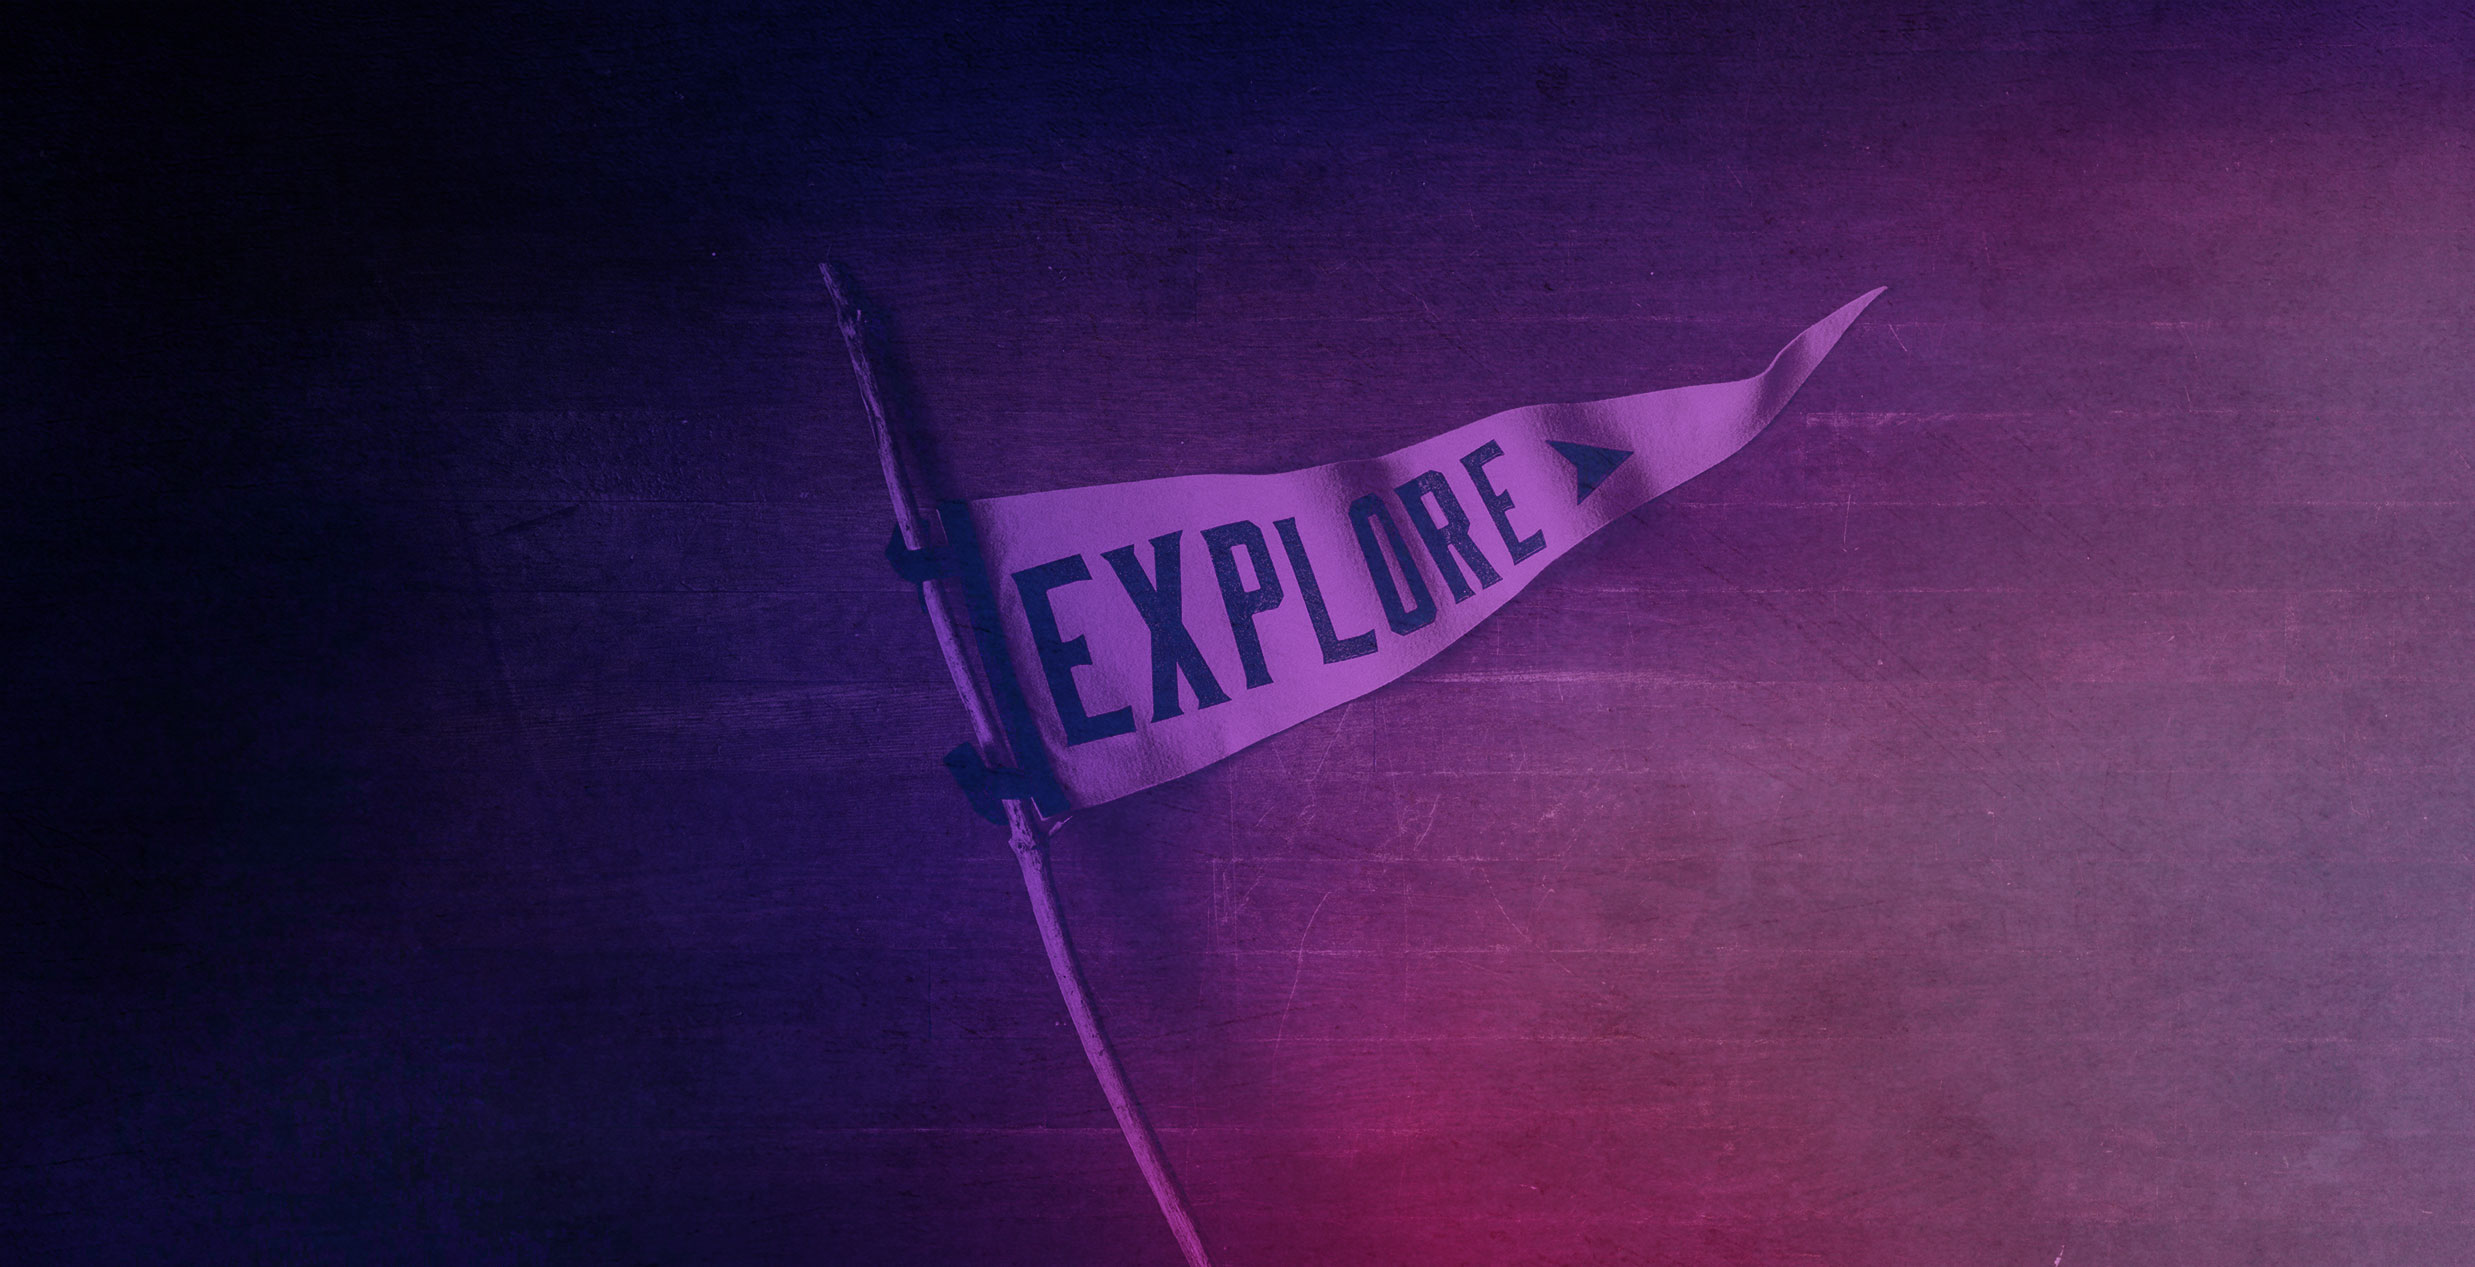 A flag on a stick reads 'Explore'